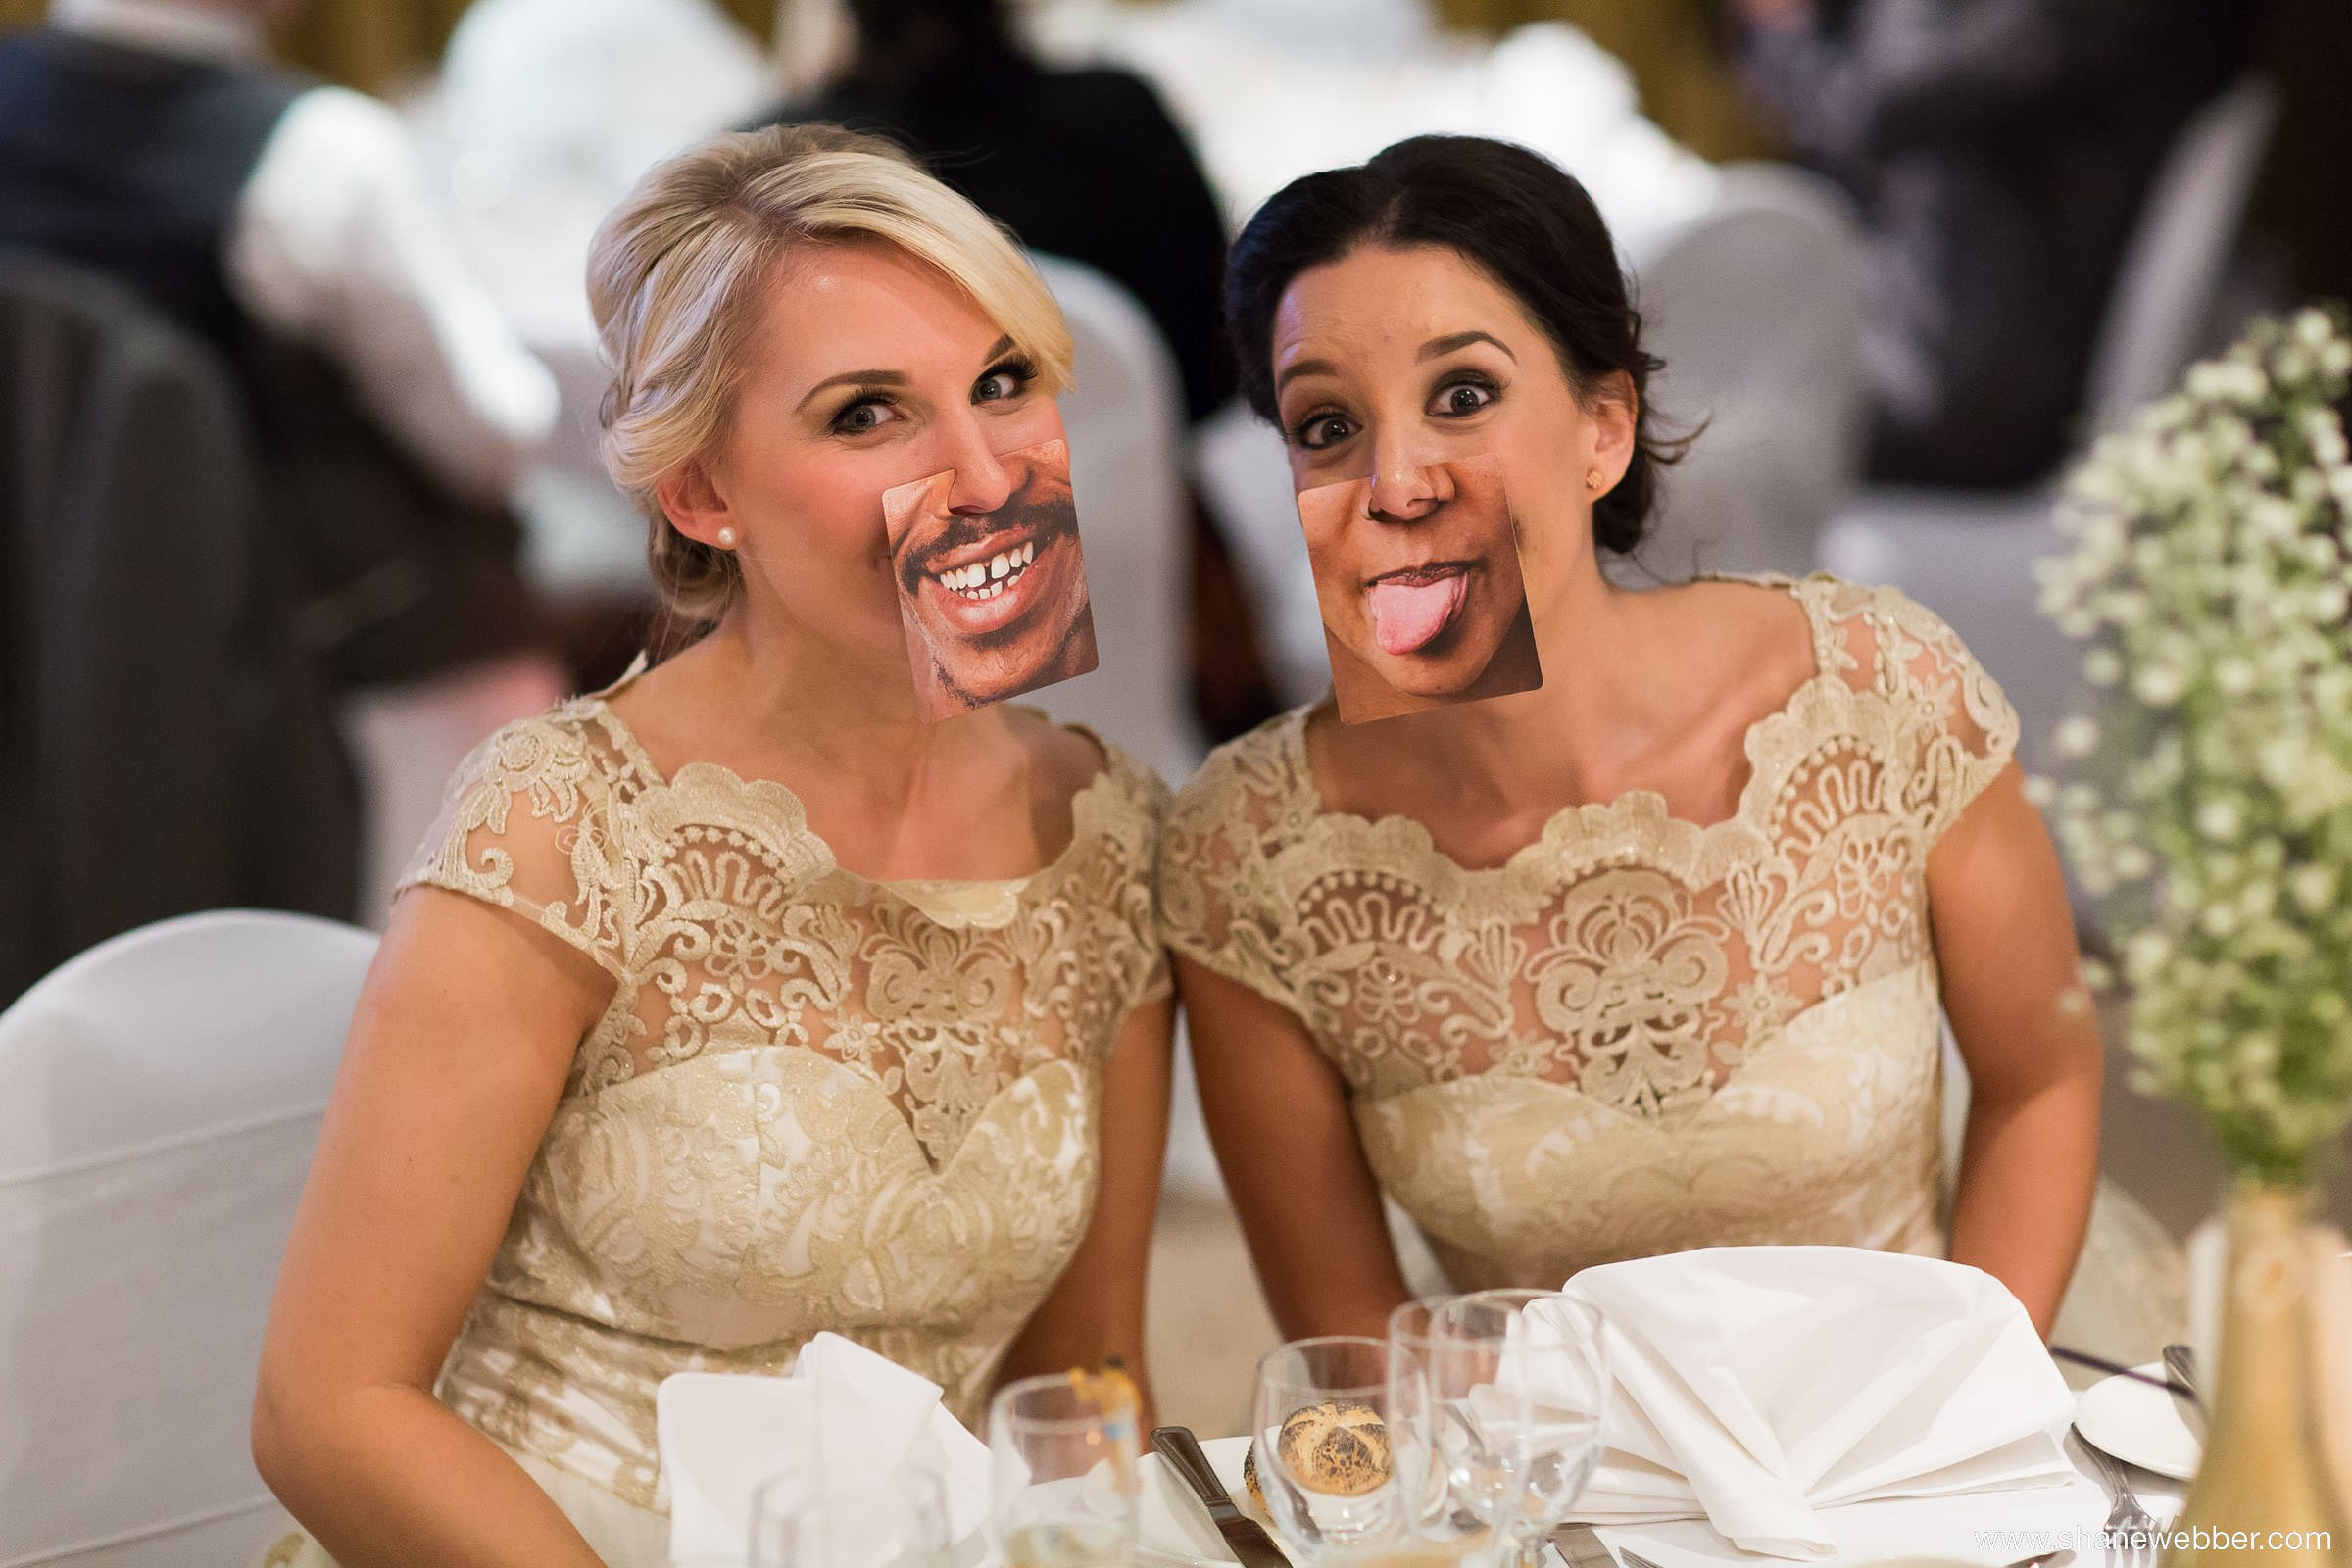 Guests having fun at a wedding